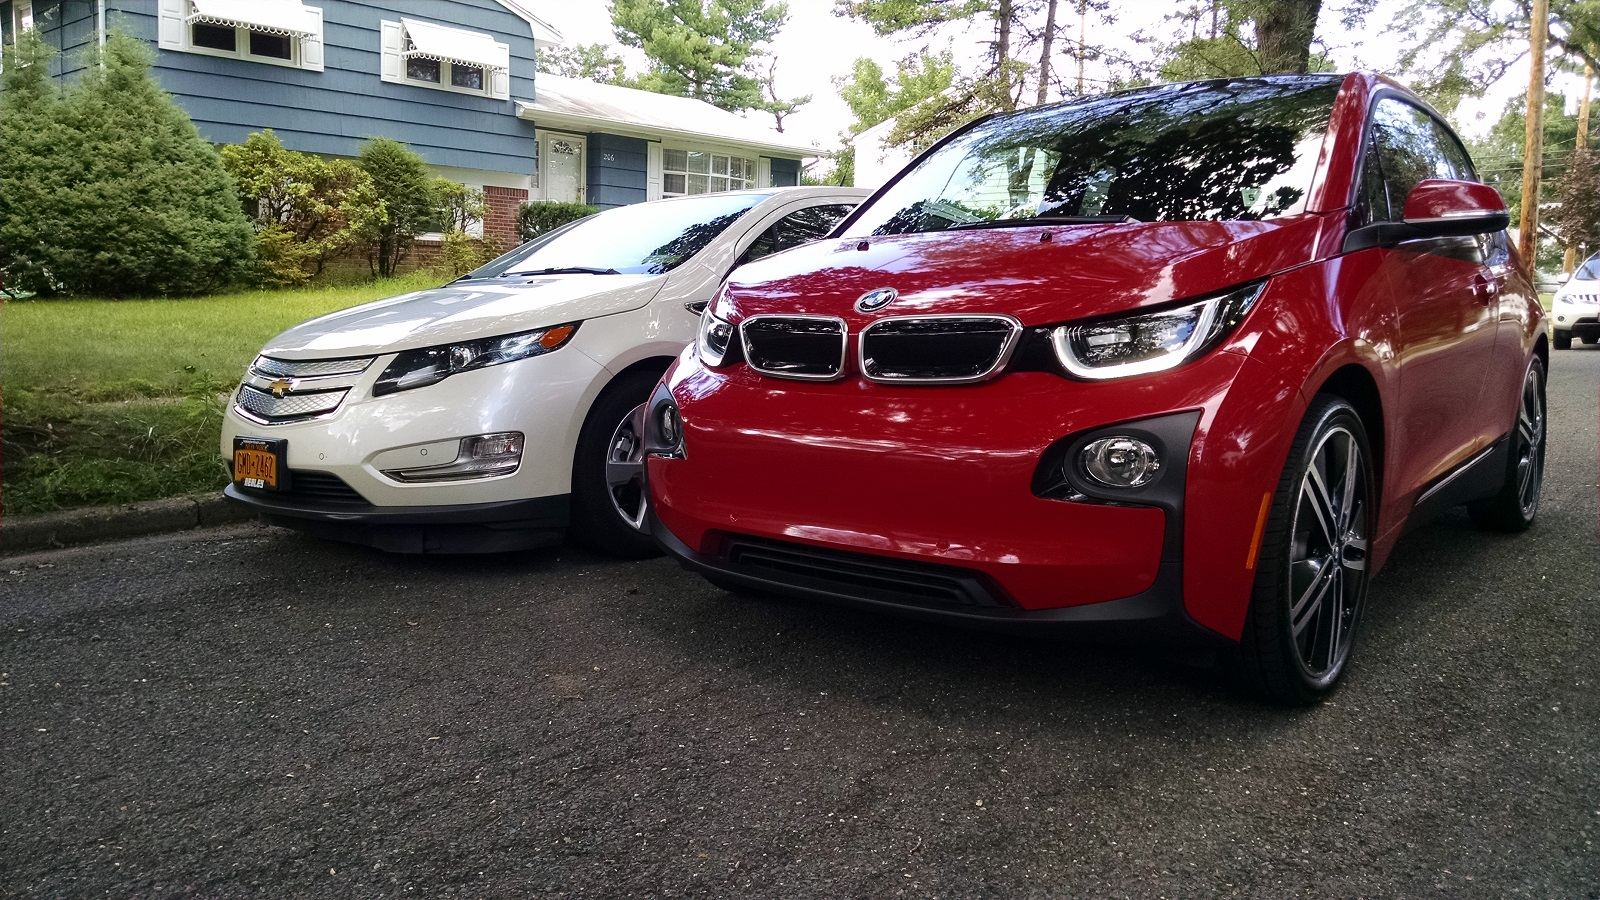 2014 bmw i3 rex vs chevy volt range extended electric. Black Bedroom Furniture Sets. Home Design Ideas